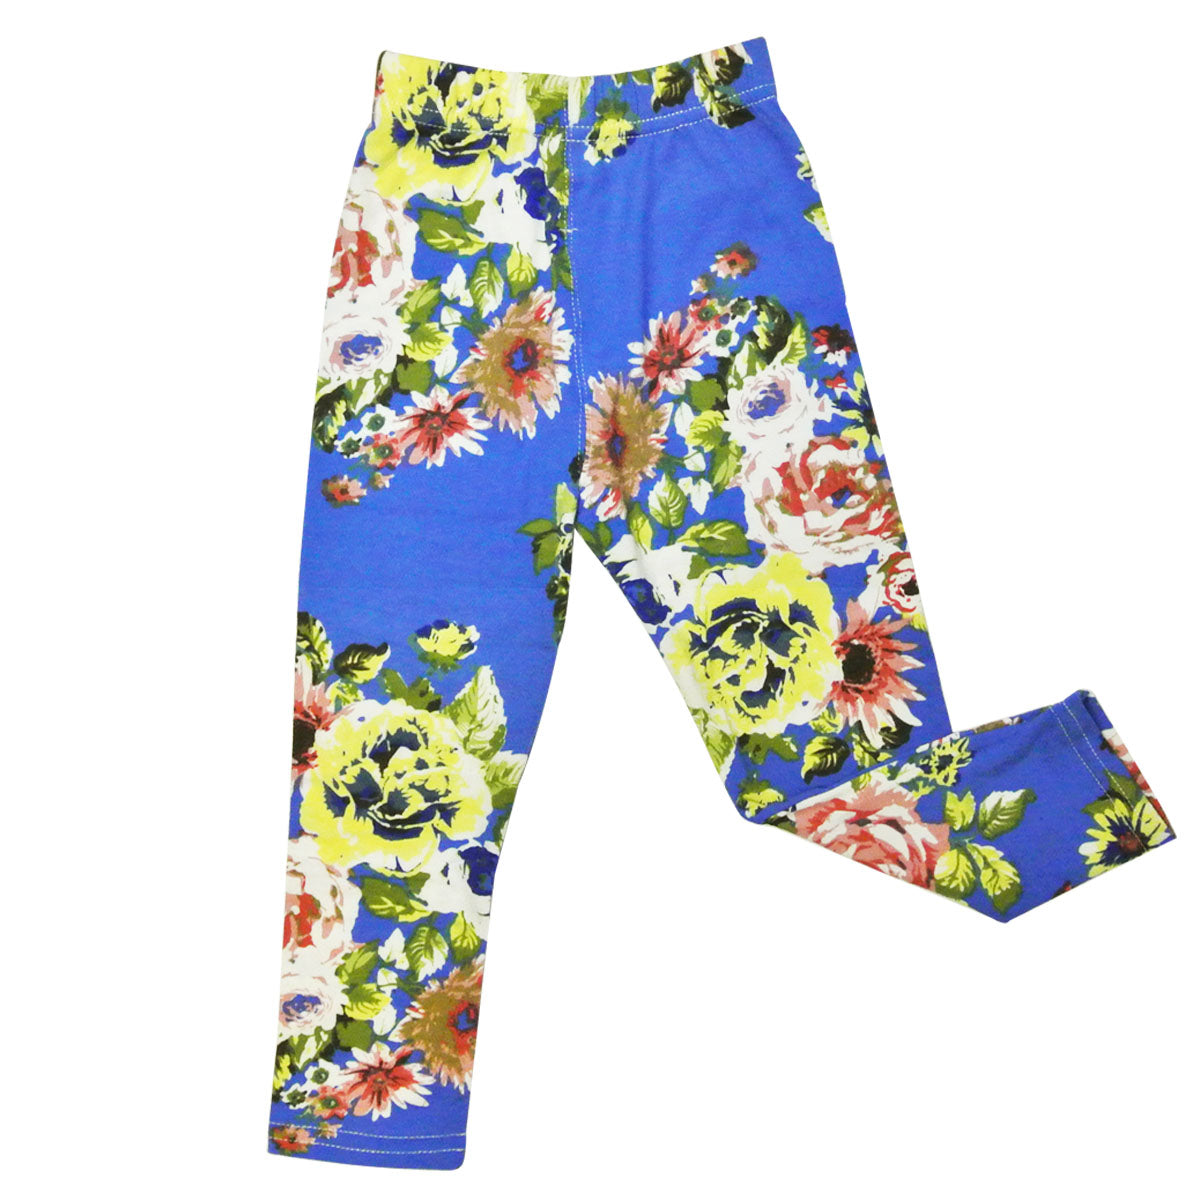 Wrapables Toddler Blooming Floral Print Leggings